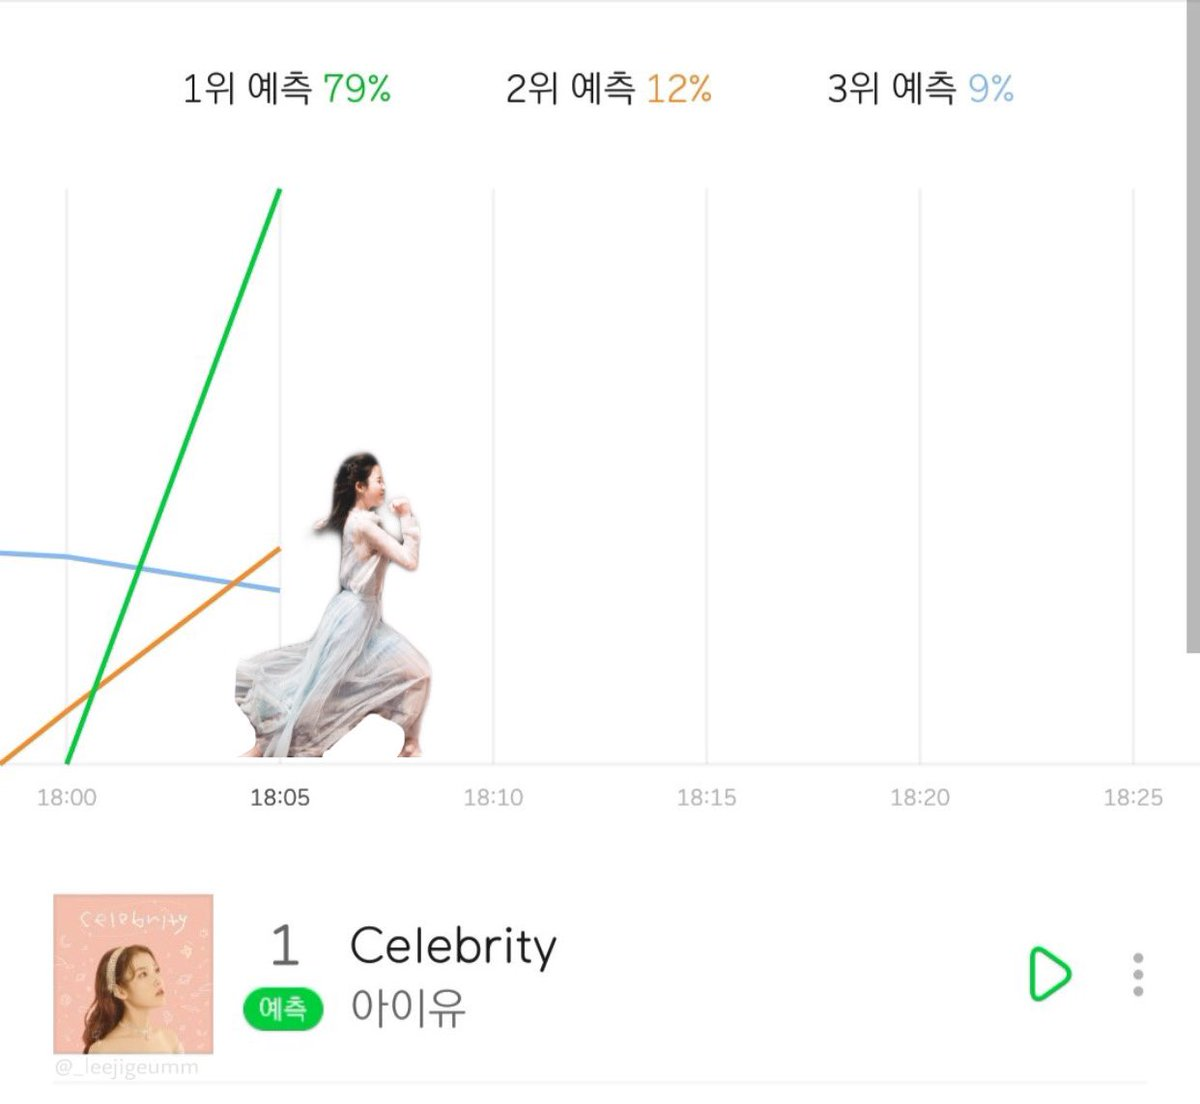 the charts as well 📈  #아이유_Celebrity_6시발매 #CelebrityIU  #CelebrityToday #IU5ISCOMING